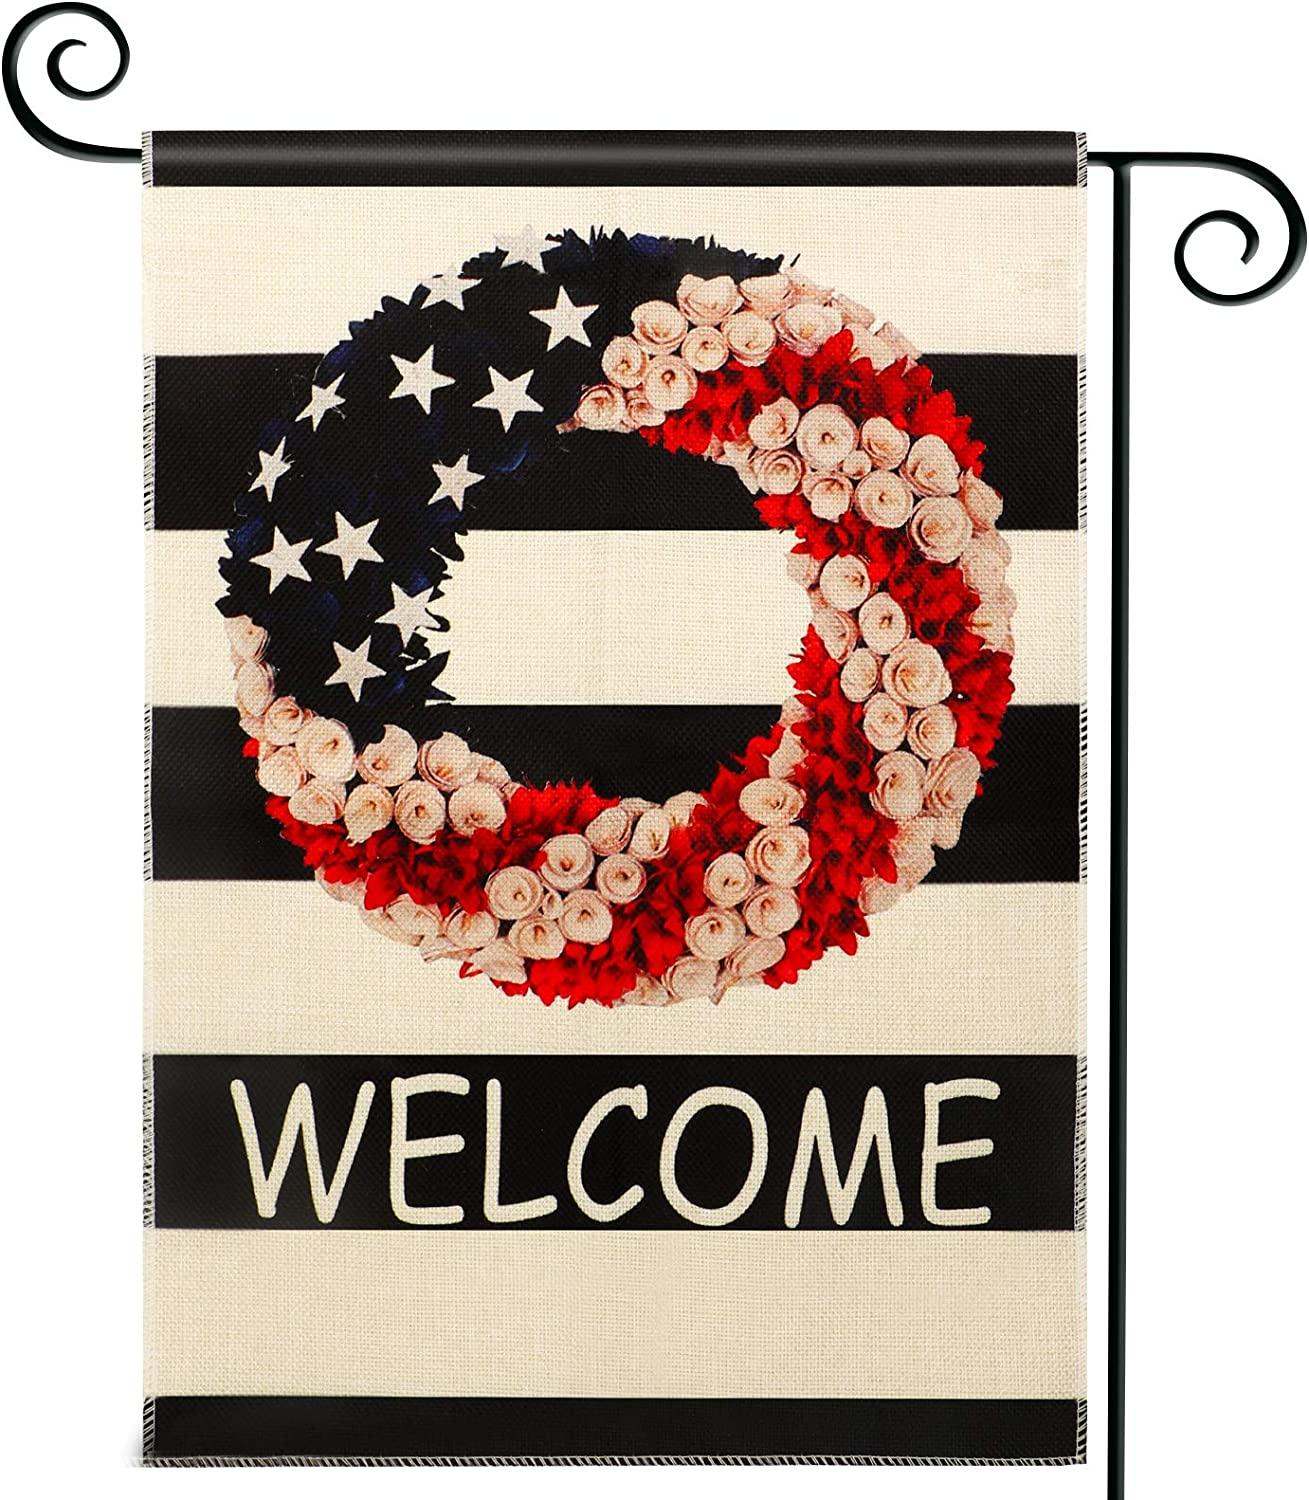 N/H Garden Flags Welcome 12.5x18 Inches Prime Double Sided Vertical Black Line America Patriotic Wreath Small Yard House Garden Flag for Outside Patio Lawn Fall Halloween Thanksgiving Decorations